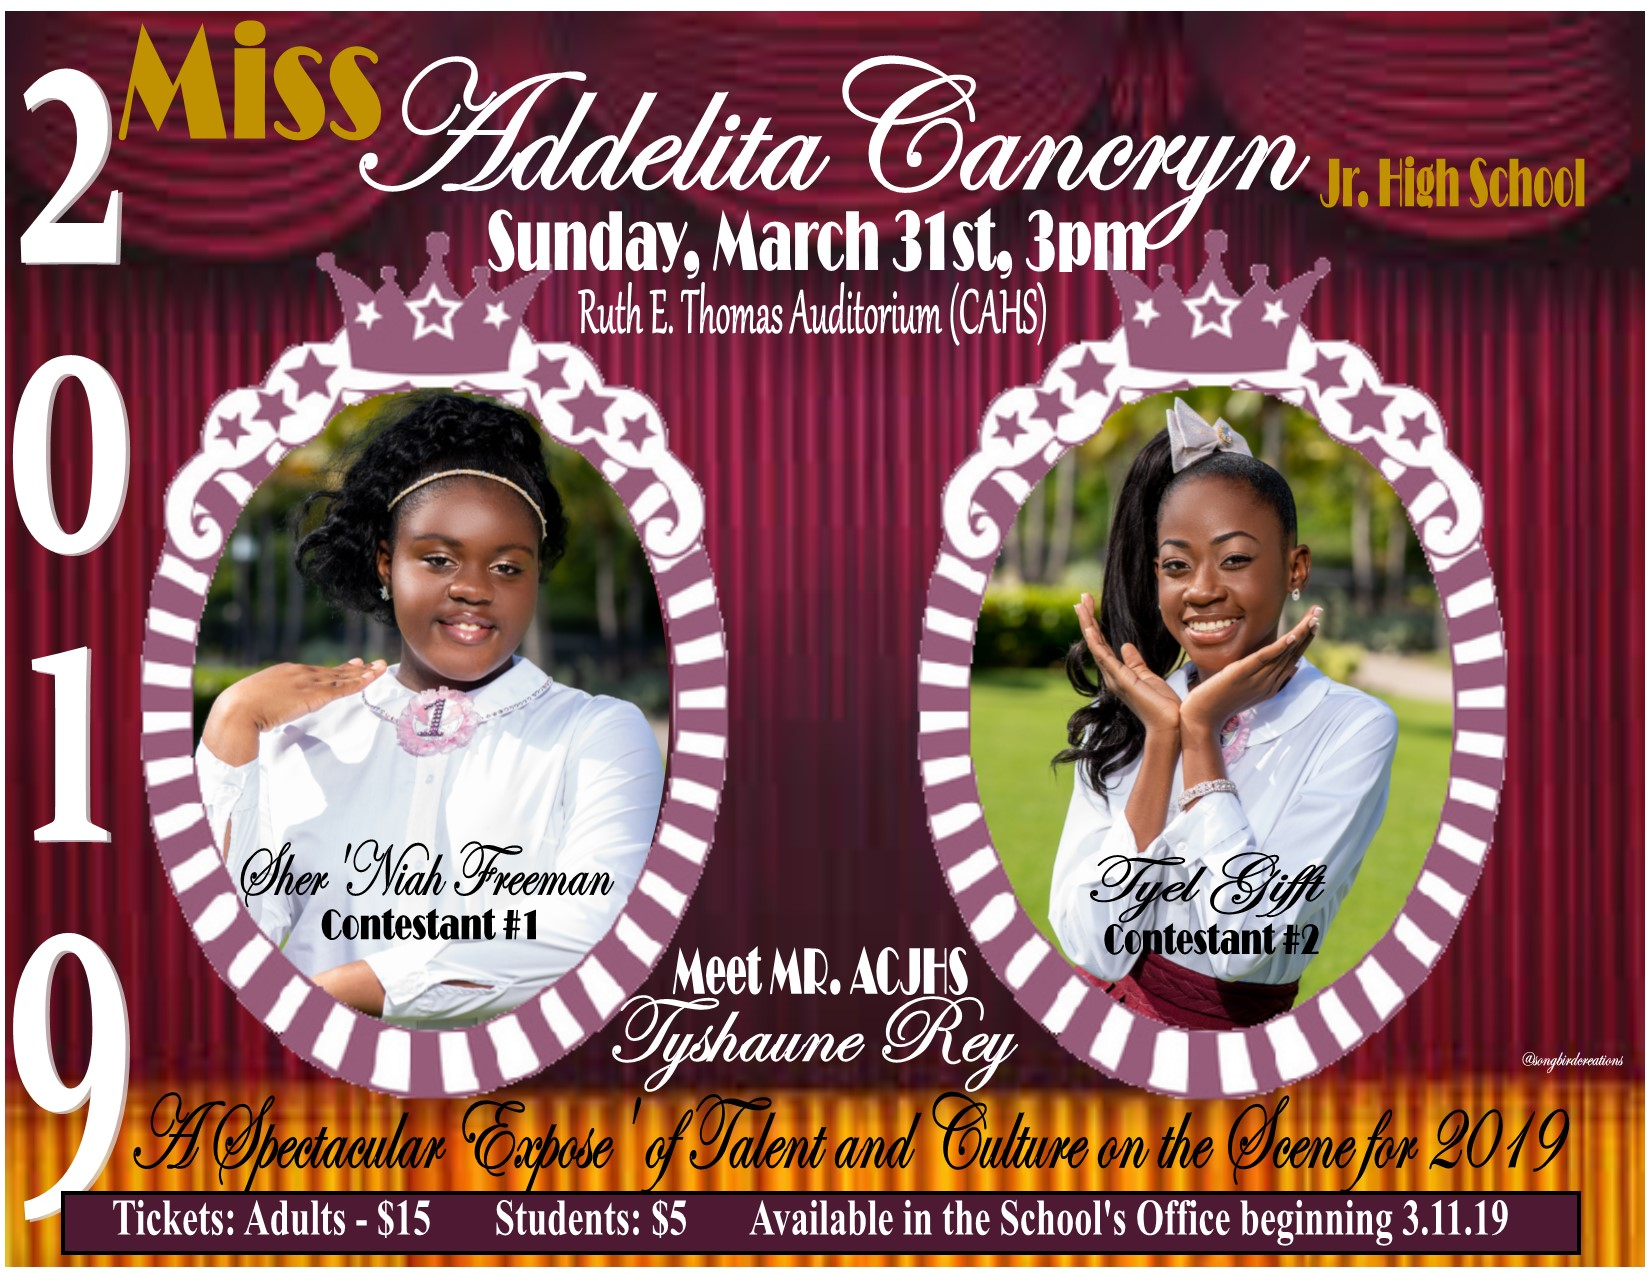 Miss Addelita Cancryn Pageant on March 31st